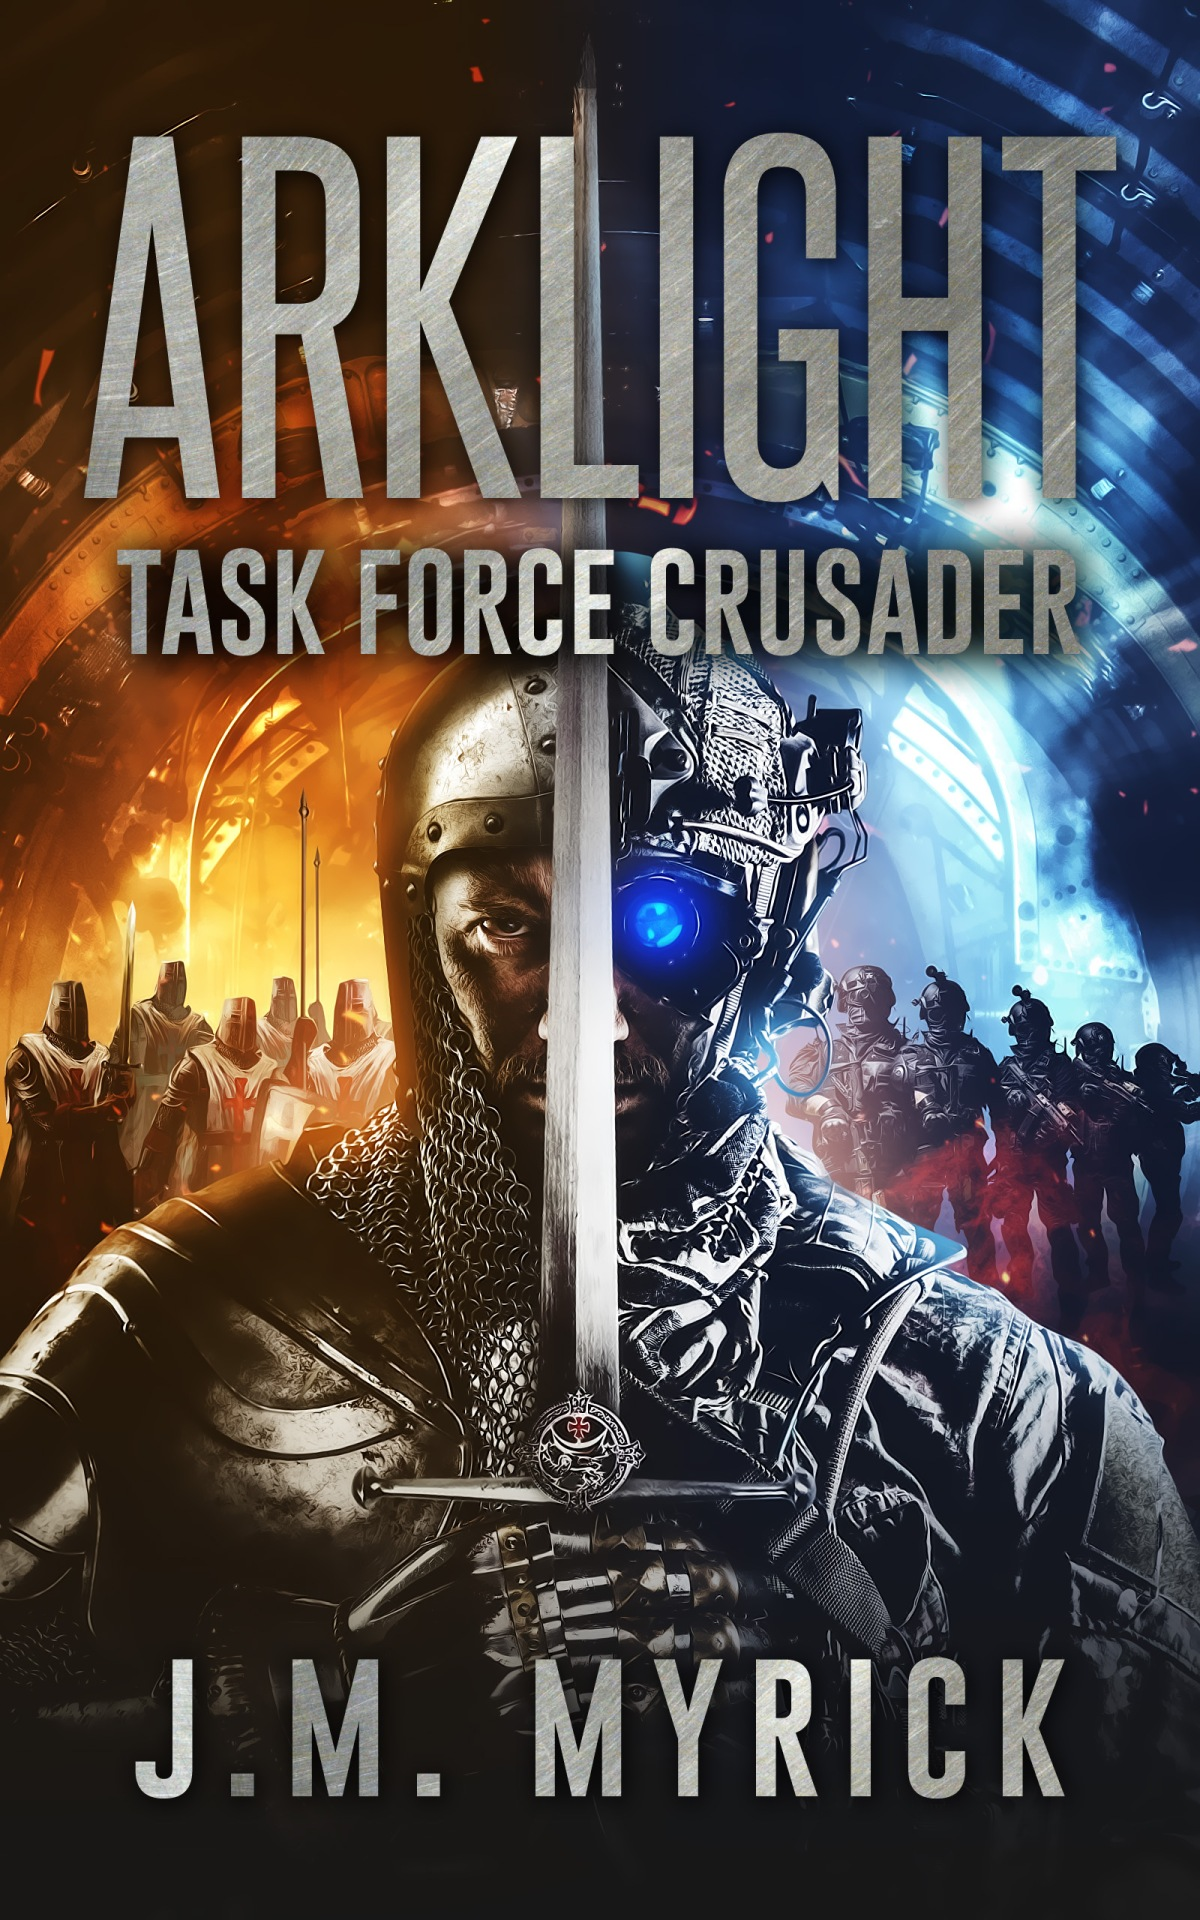 Arklight: Task Force Crusader